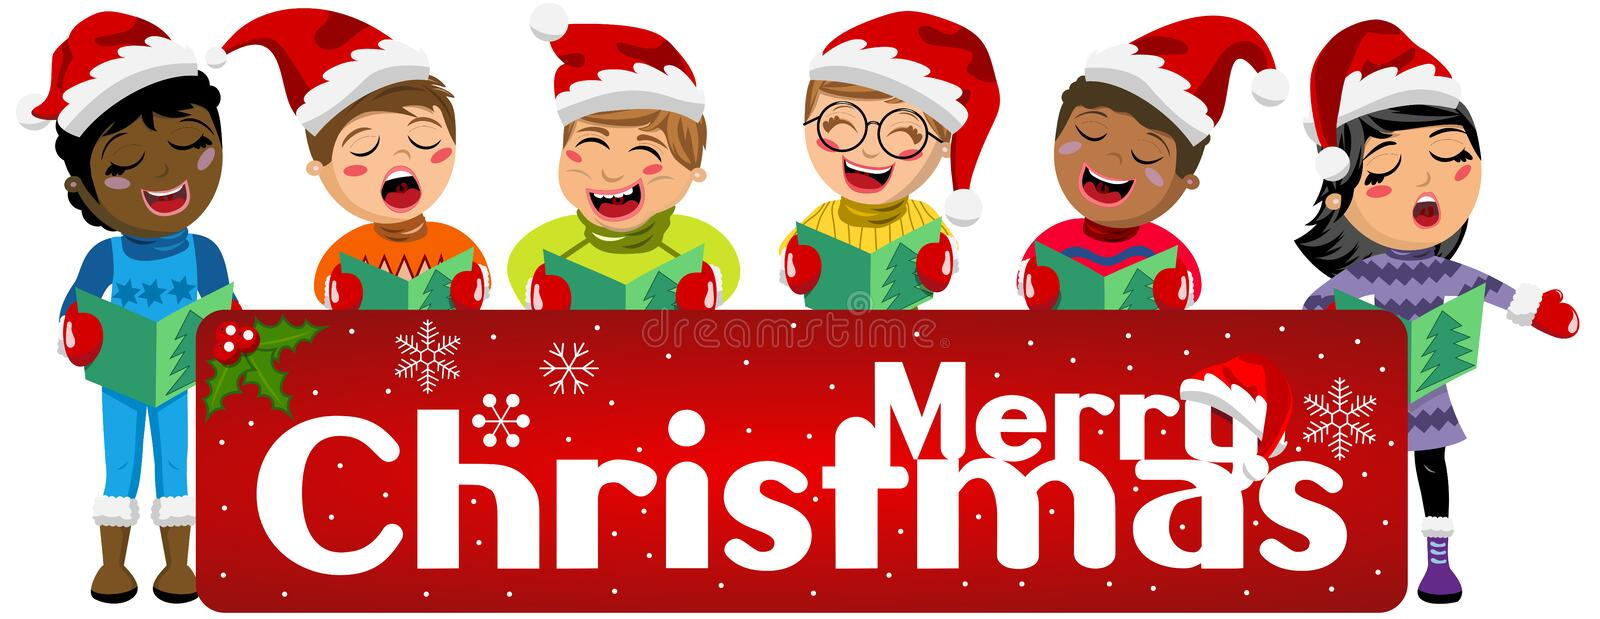 Multicultural kids wearing xmas hat singing Christmas carol banner isolated royalty free illustration